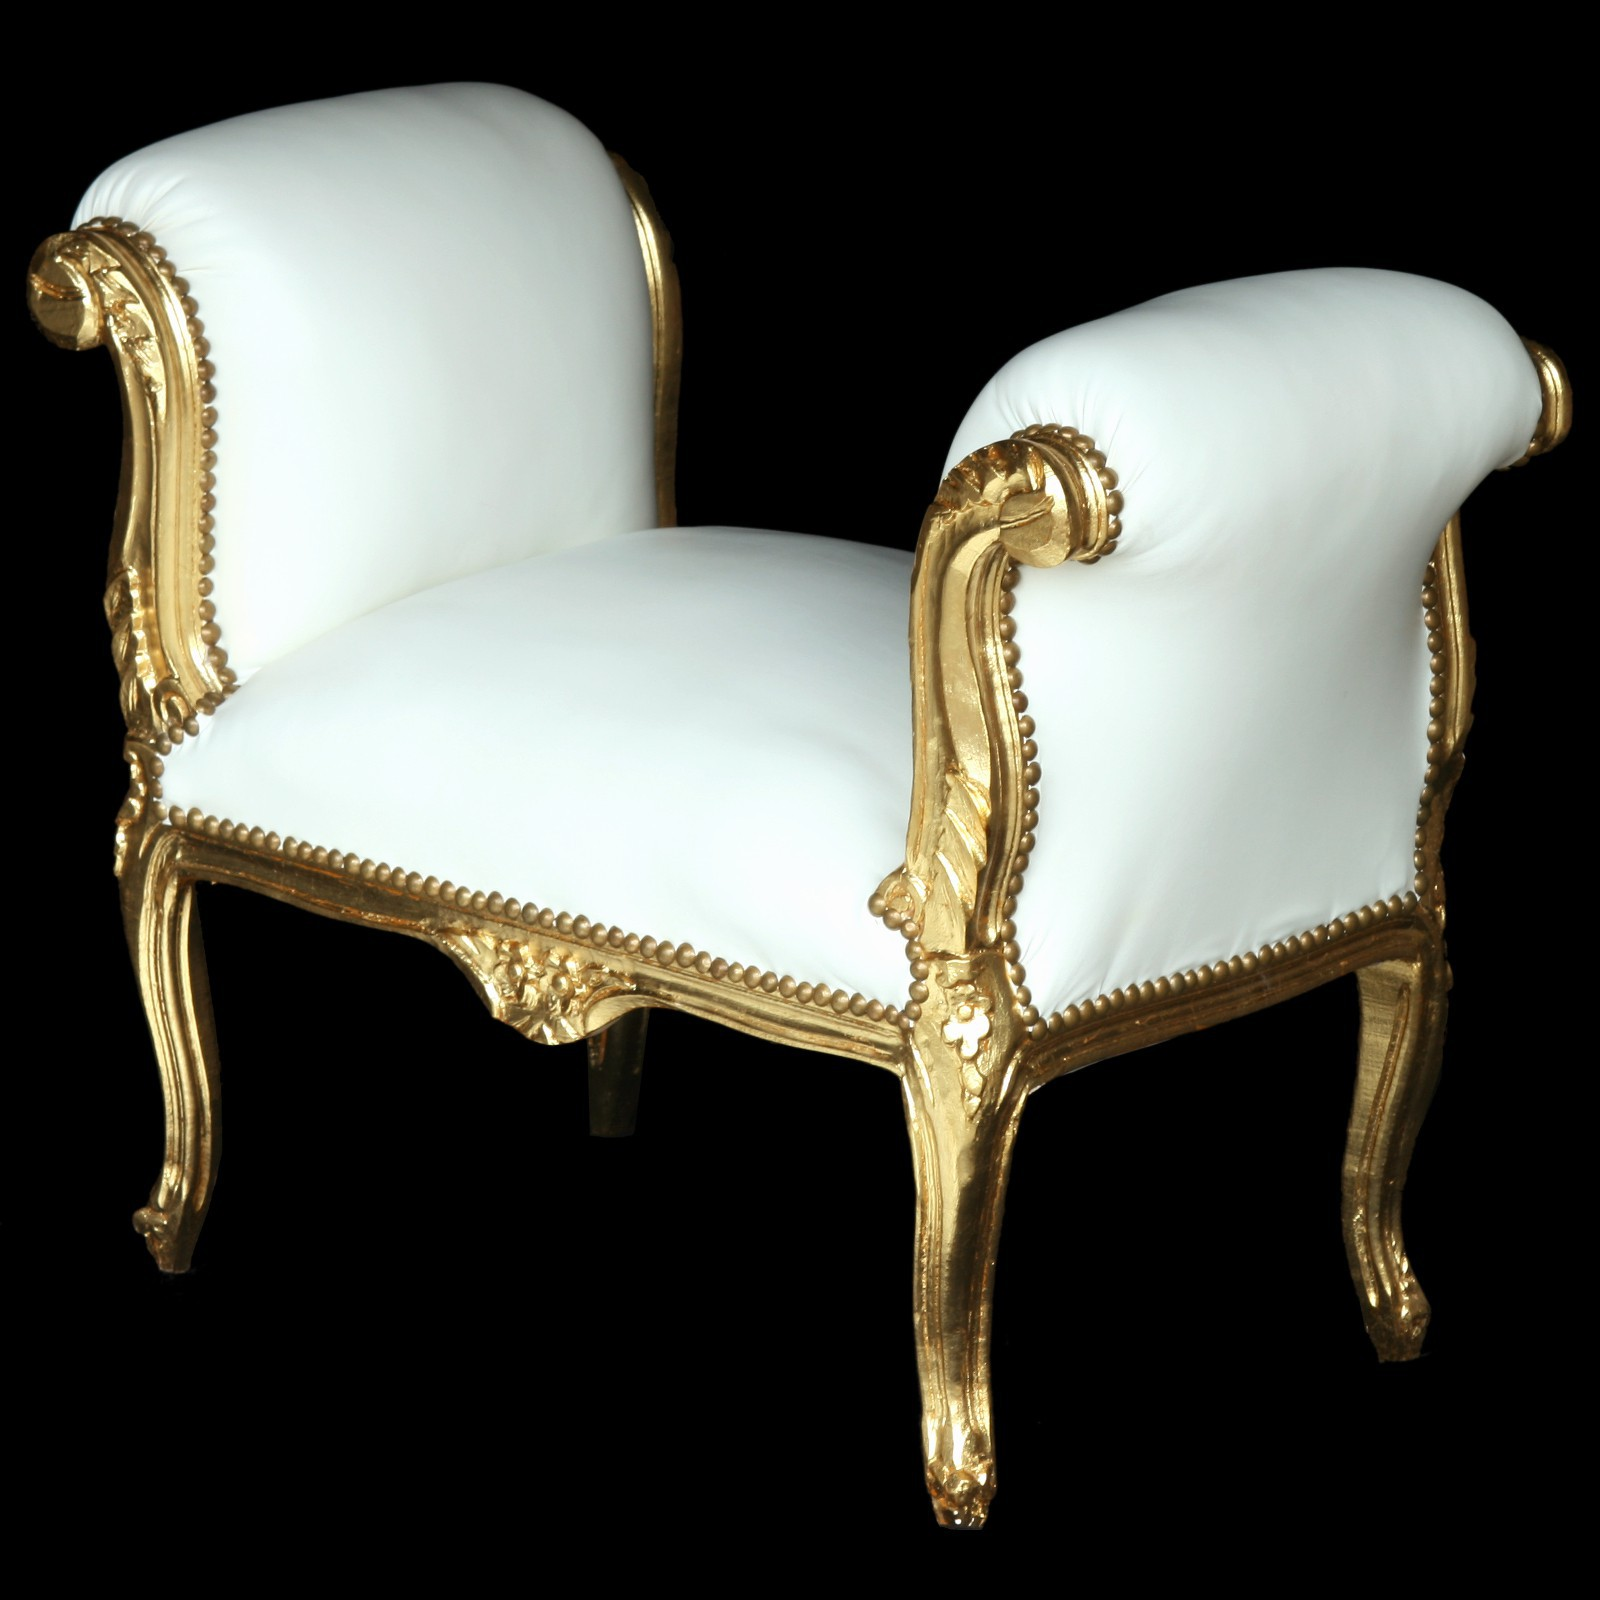 sitzbank esszimmer antikes barock design wei gold edel. Black Bedroom Furniture Sets. Home Design Ideas